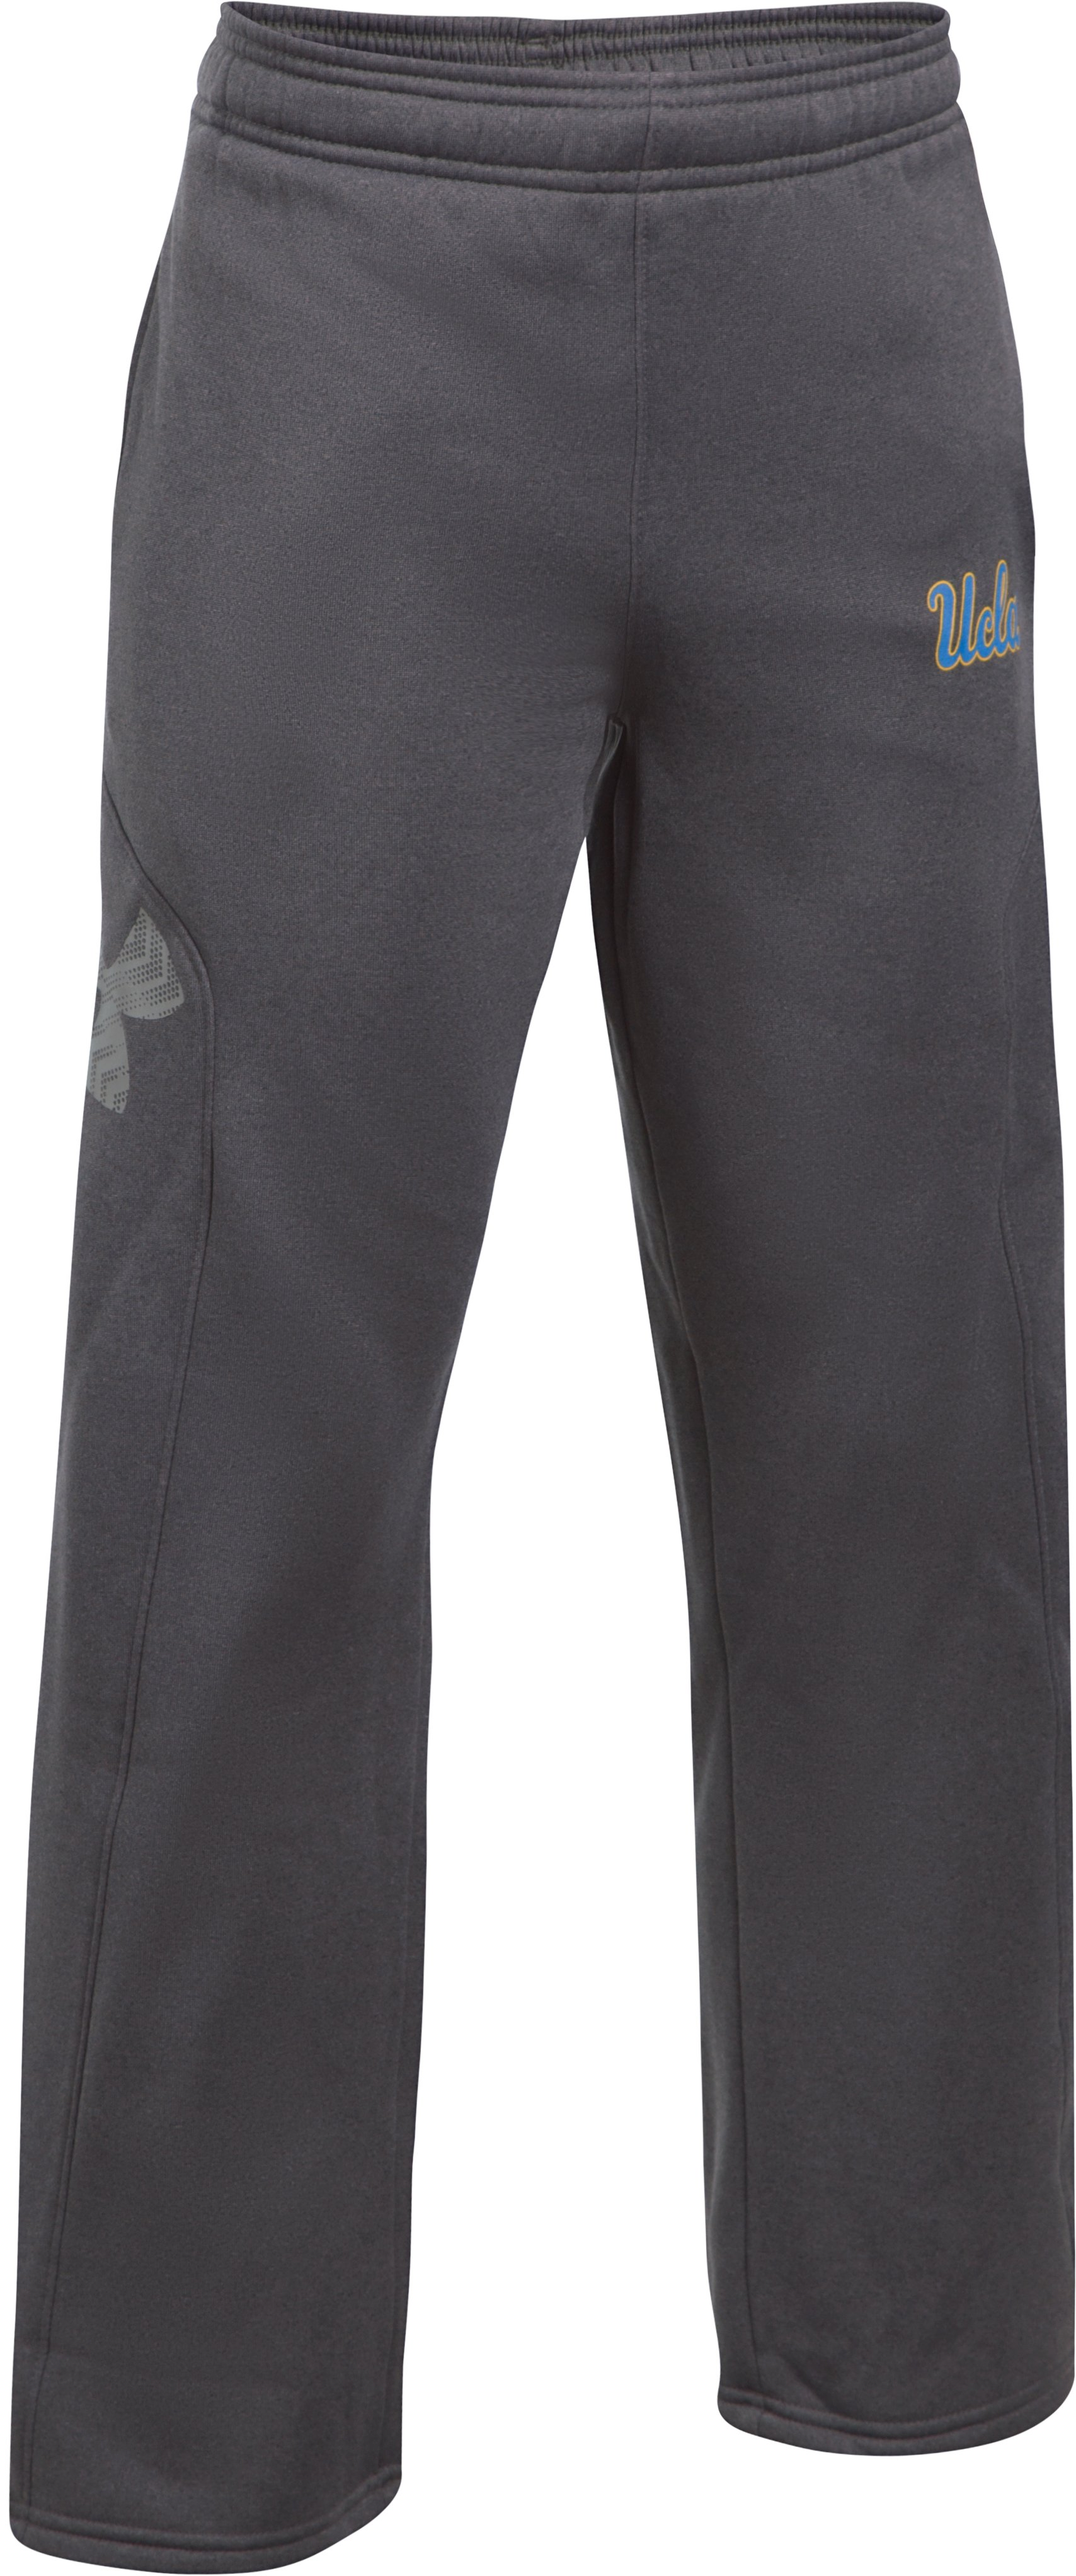 Boys' UCLA Big Logo Pants, Carbon Heather